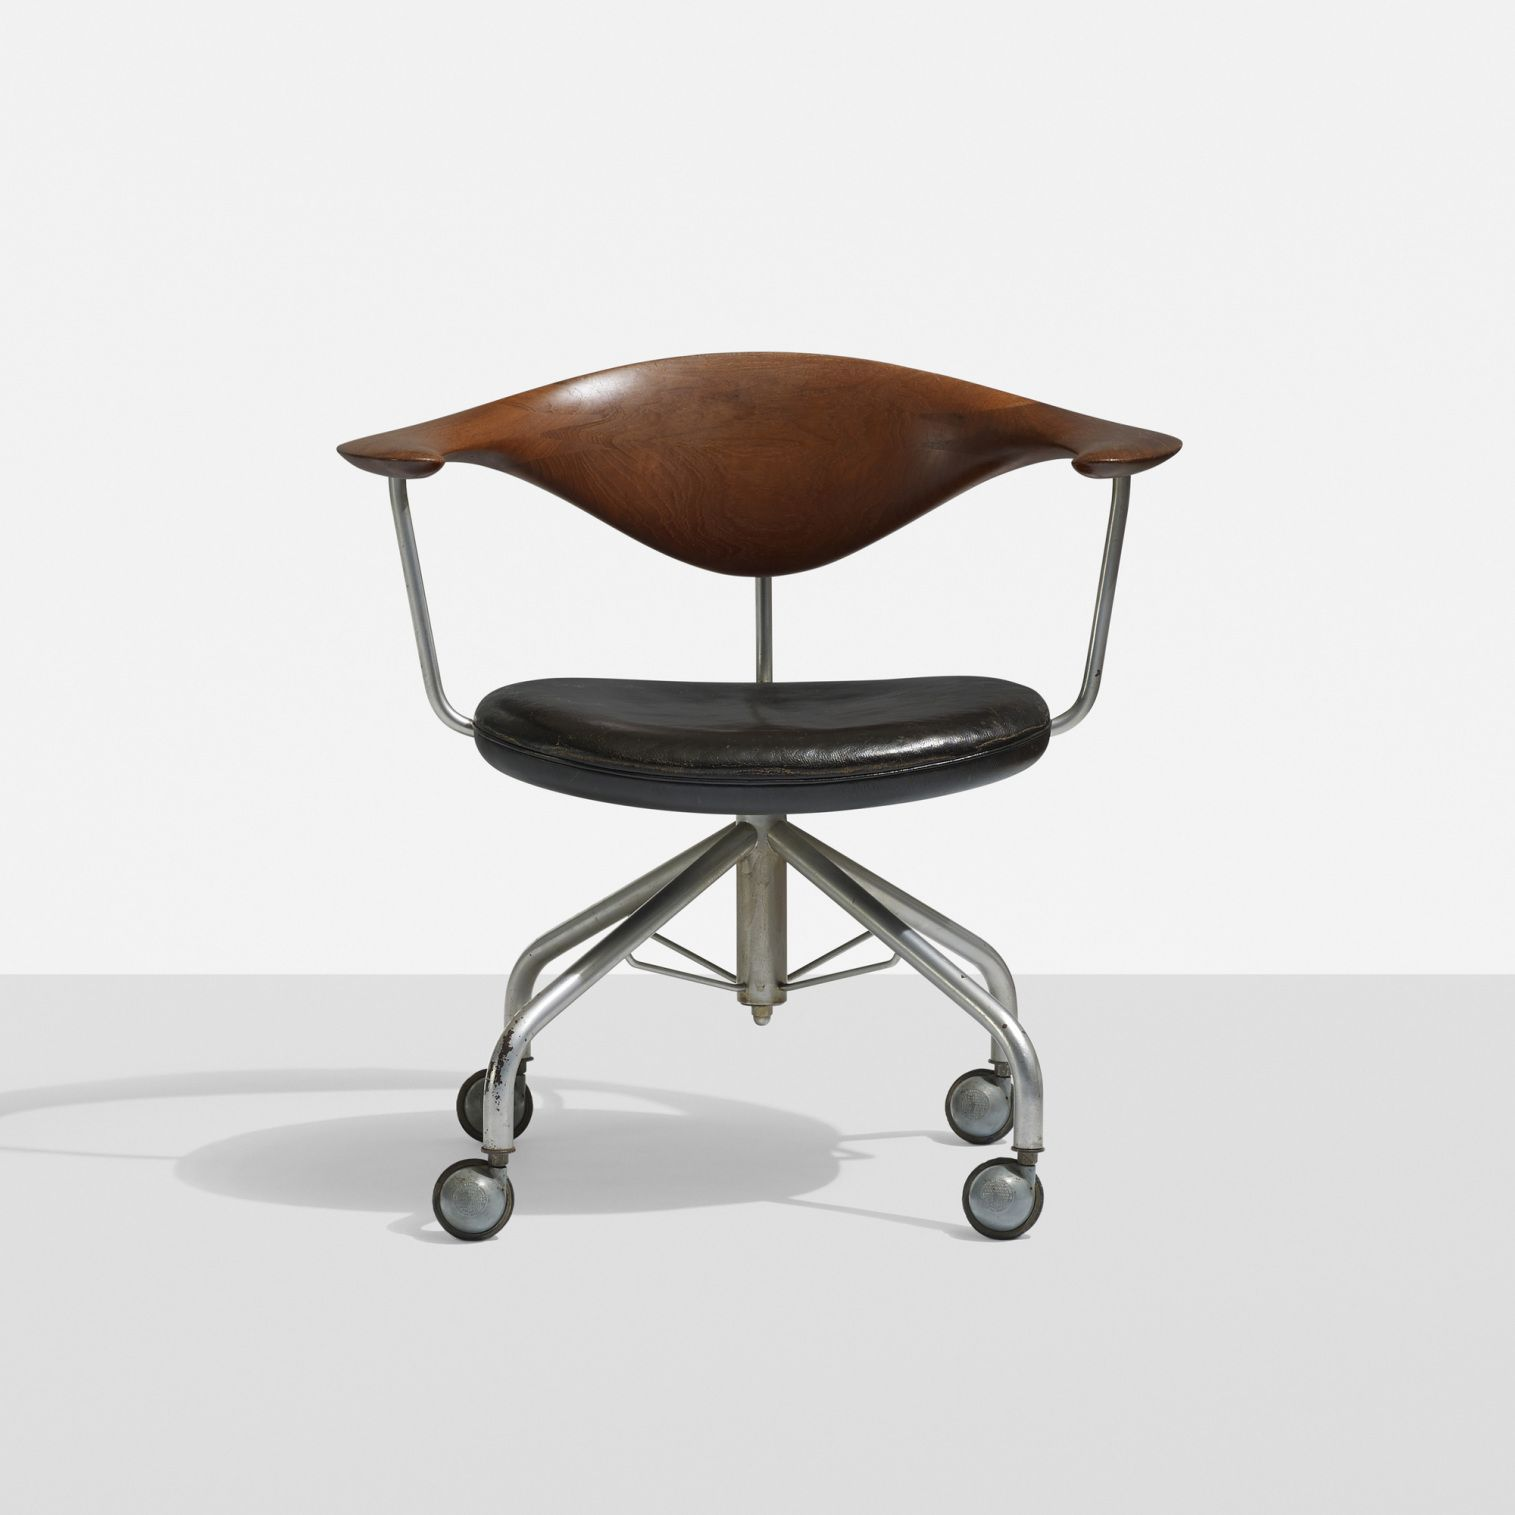 Scandinavian Office Chair - Furniture for Home Office Check more at // & Scandinavian Office Chair - Furniture for Home Office Check more at ...